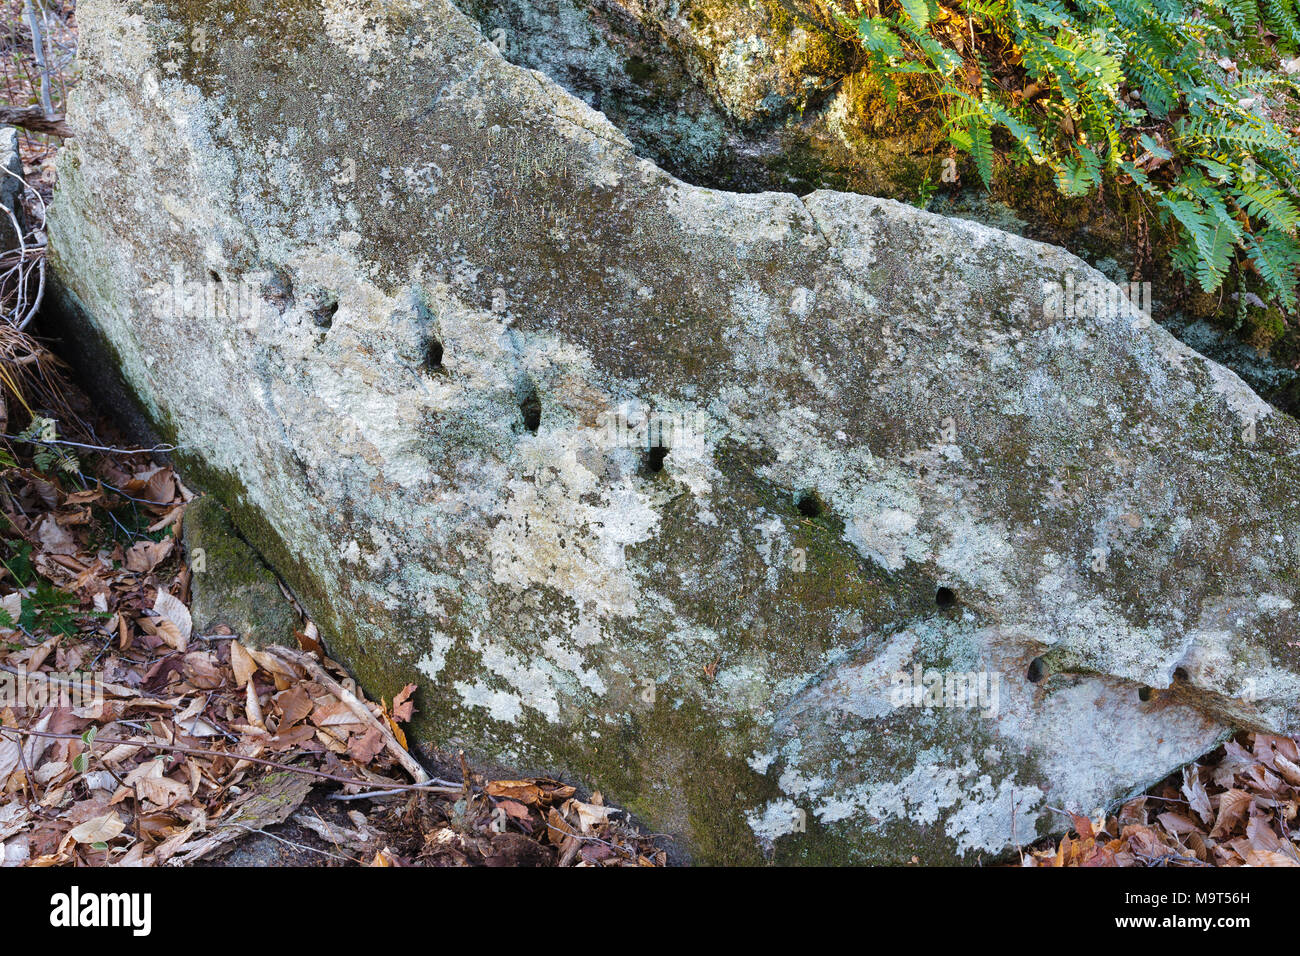 Remnants of stone splitting (plug and feathers) in the area of 'The Great Trestle' along the Profile & Franconia Notch Railroad in Franconia, NH - Stock Image